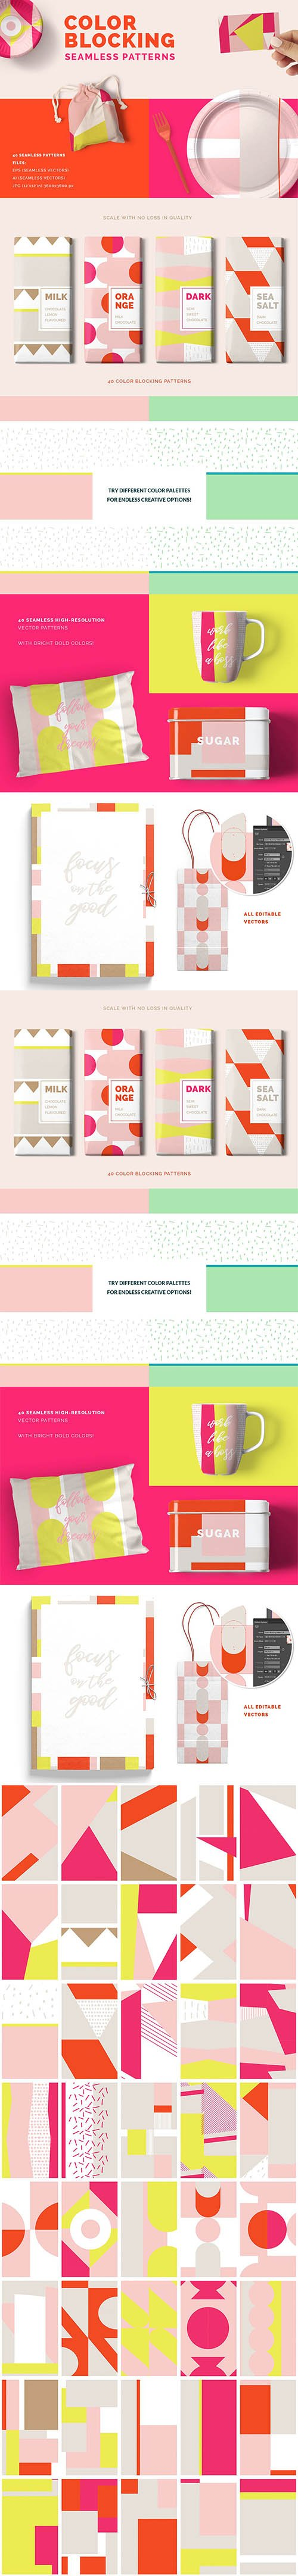 Color Blocking Patterns - CM 1378523